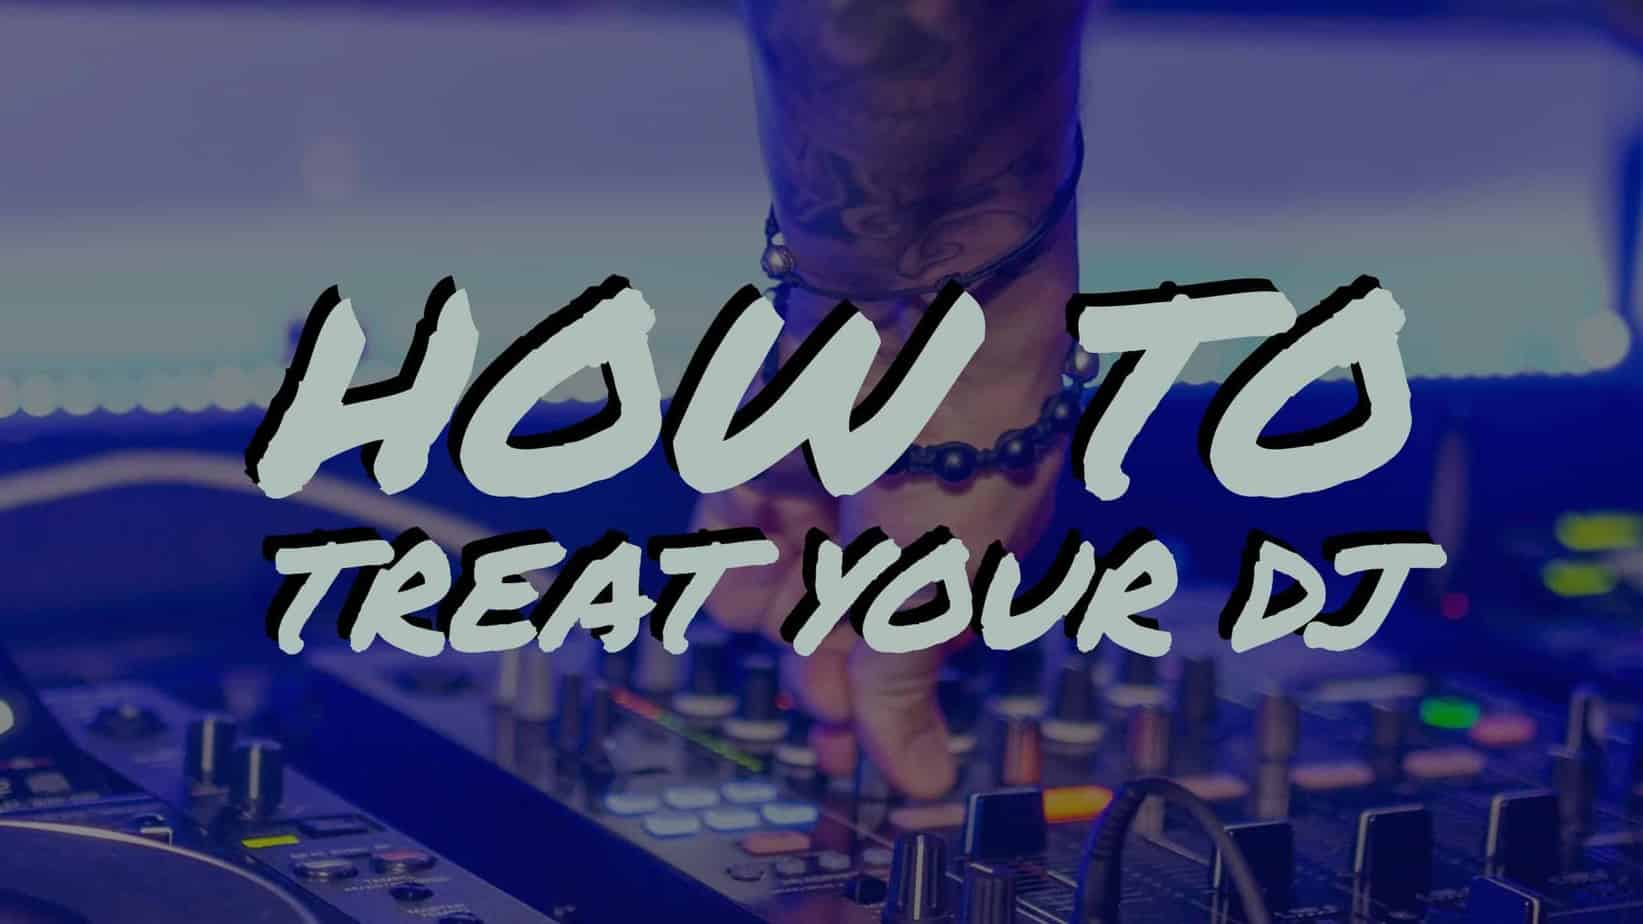 How To Treat Your DJ